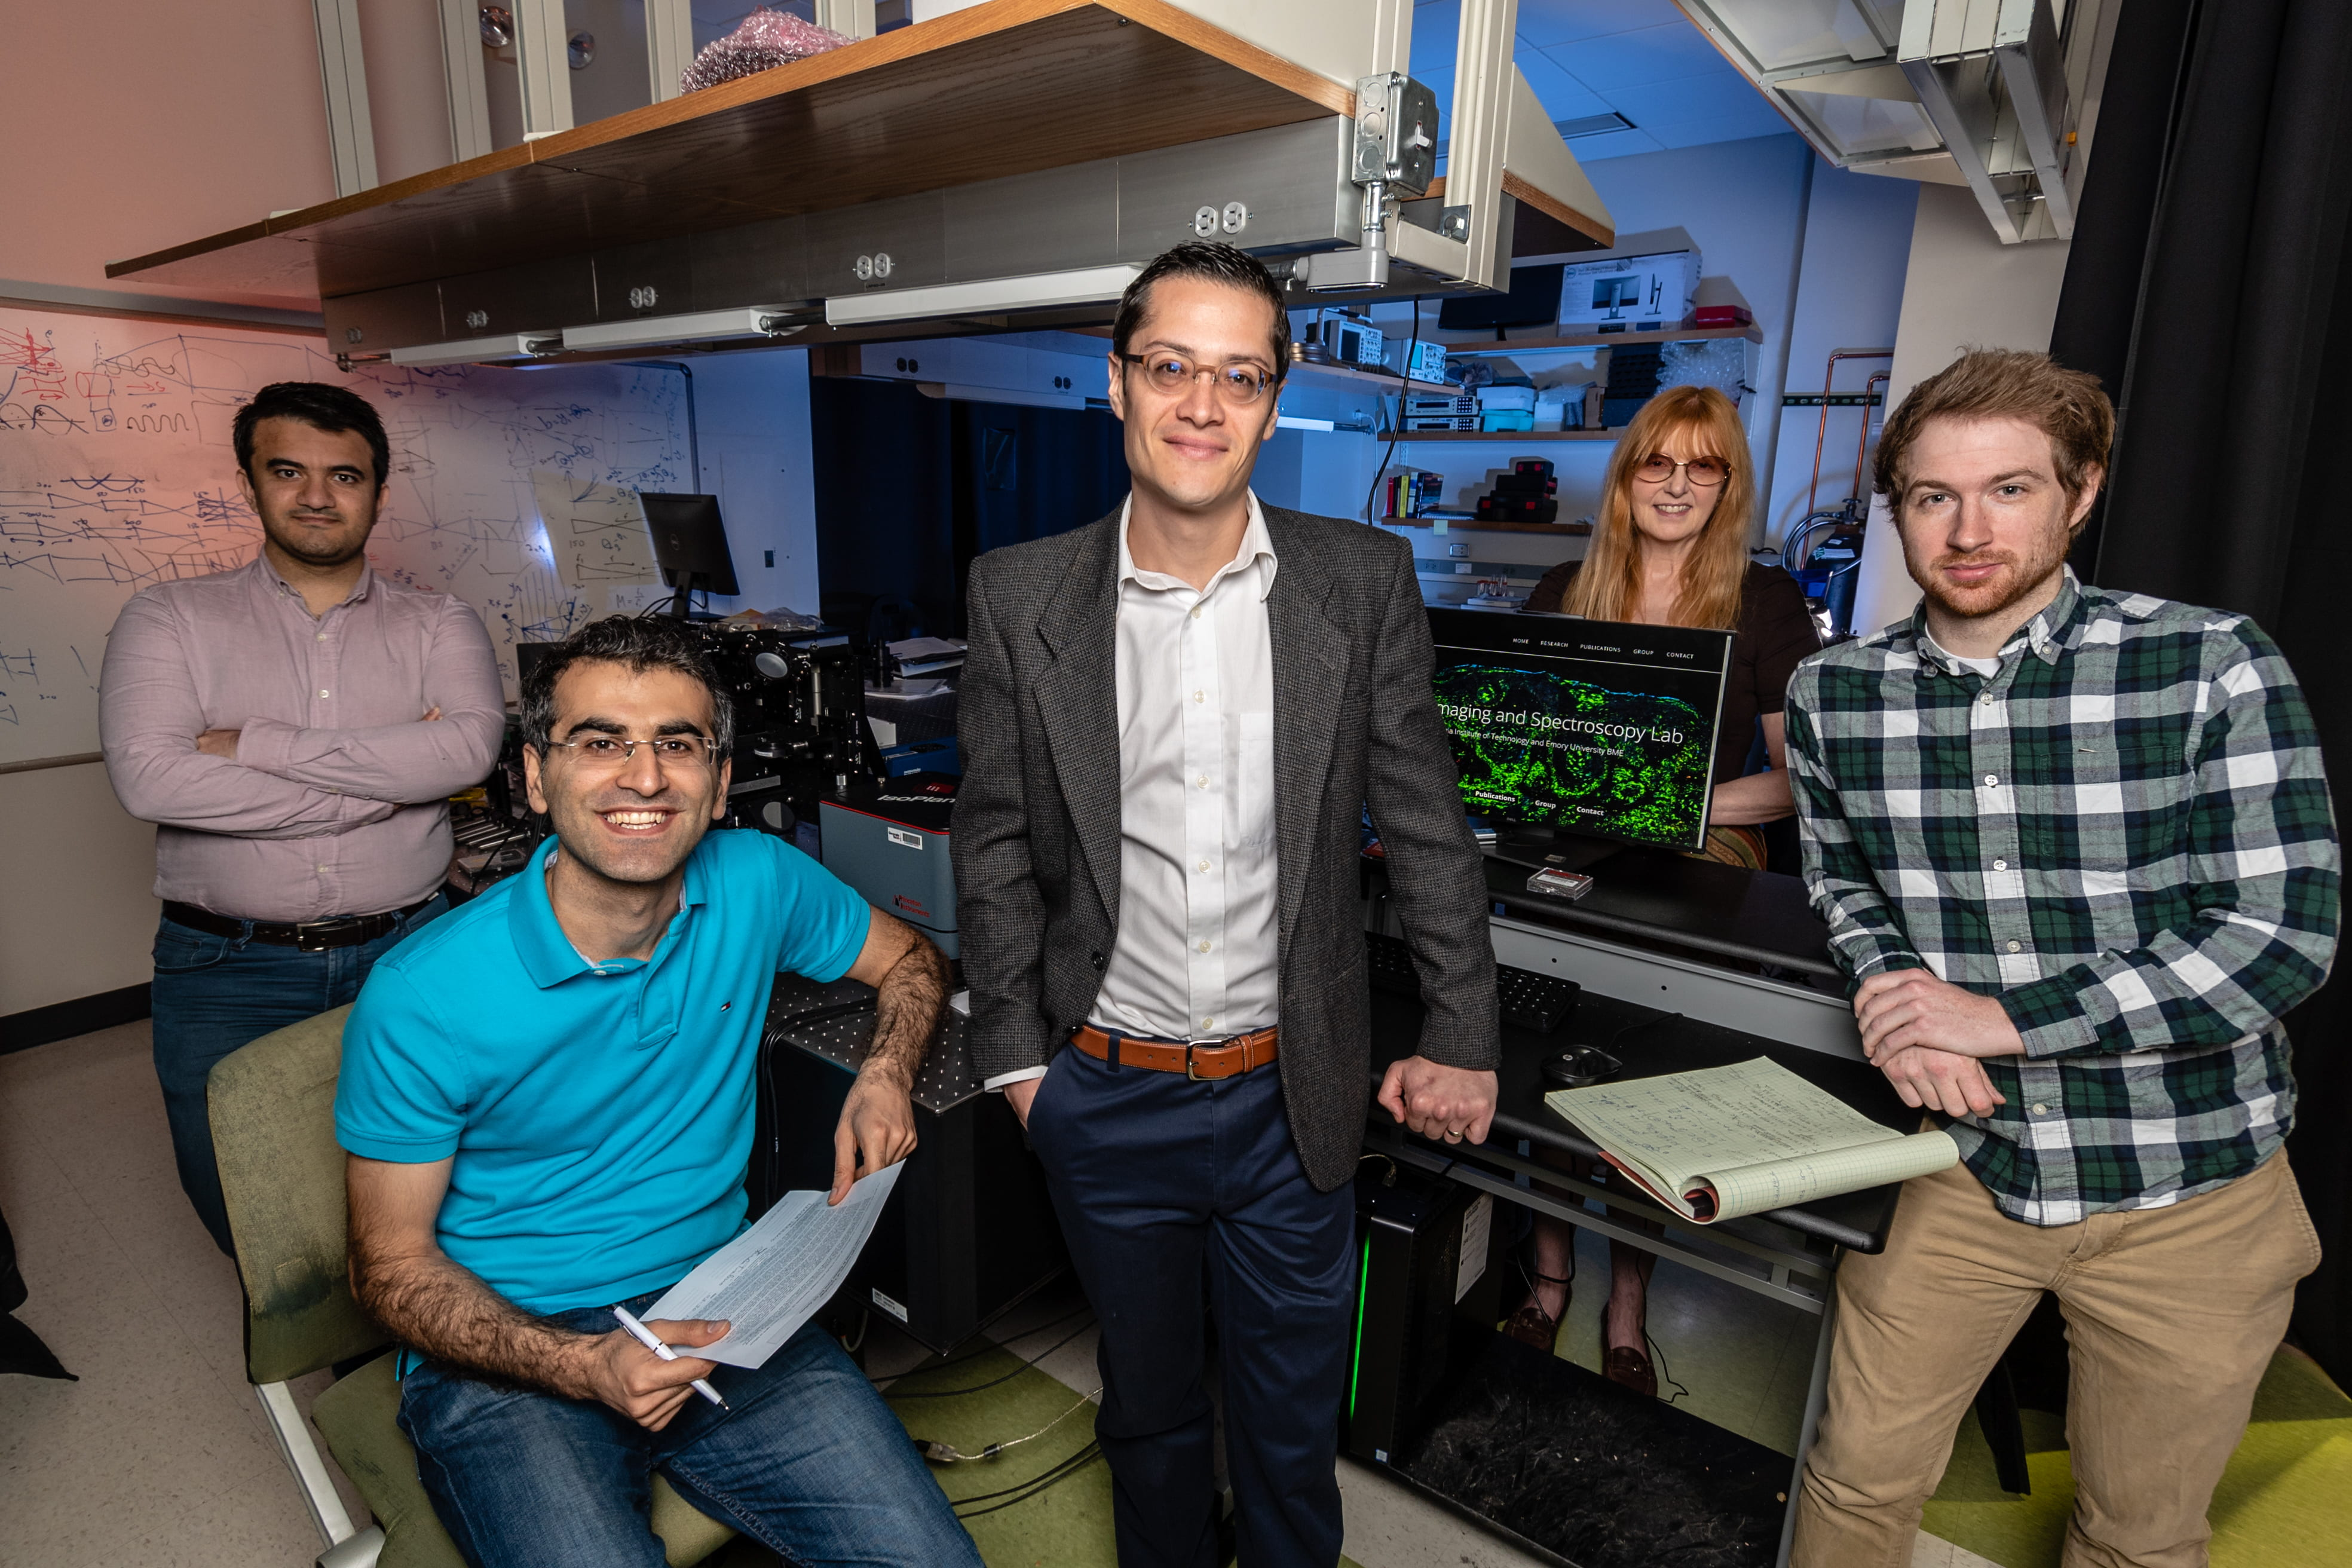 Francisco E Robles Assistant Professor  Biophotonics, microscopy, spectroscopy, interferometry, holography, molecular imaging, non-linear optics  Wallace A. Coulter Department of Biomedical Engineering College of Engineering Georgia Institute of Technology